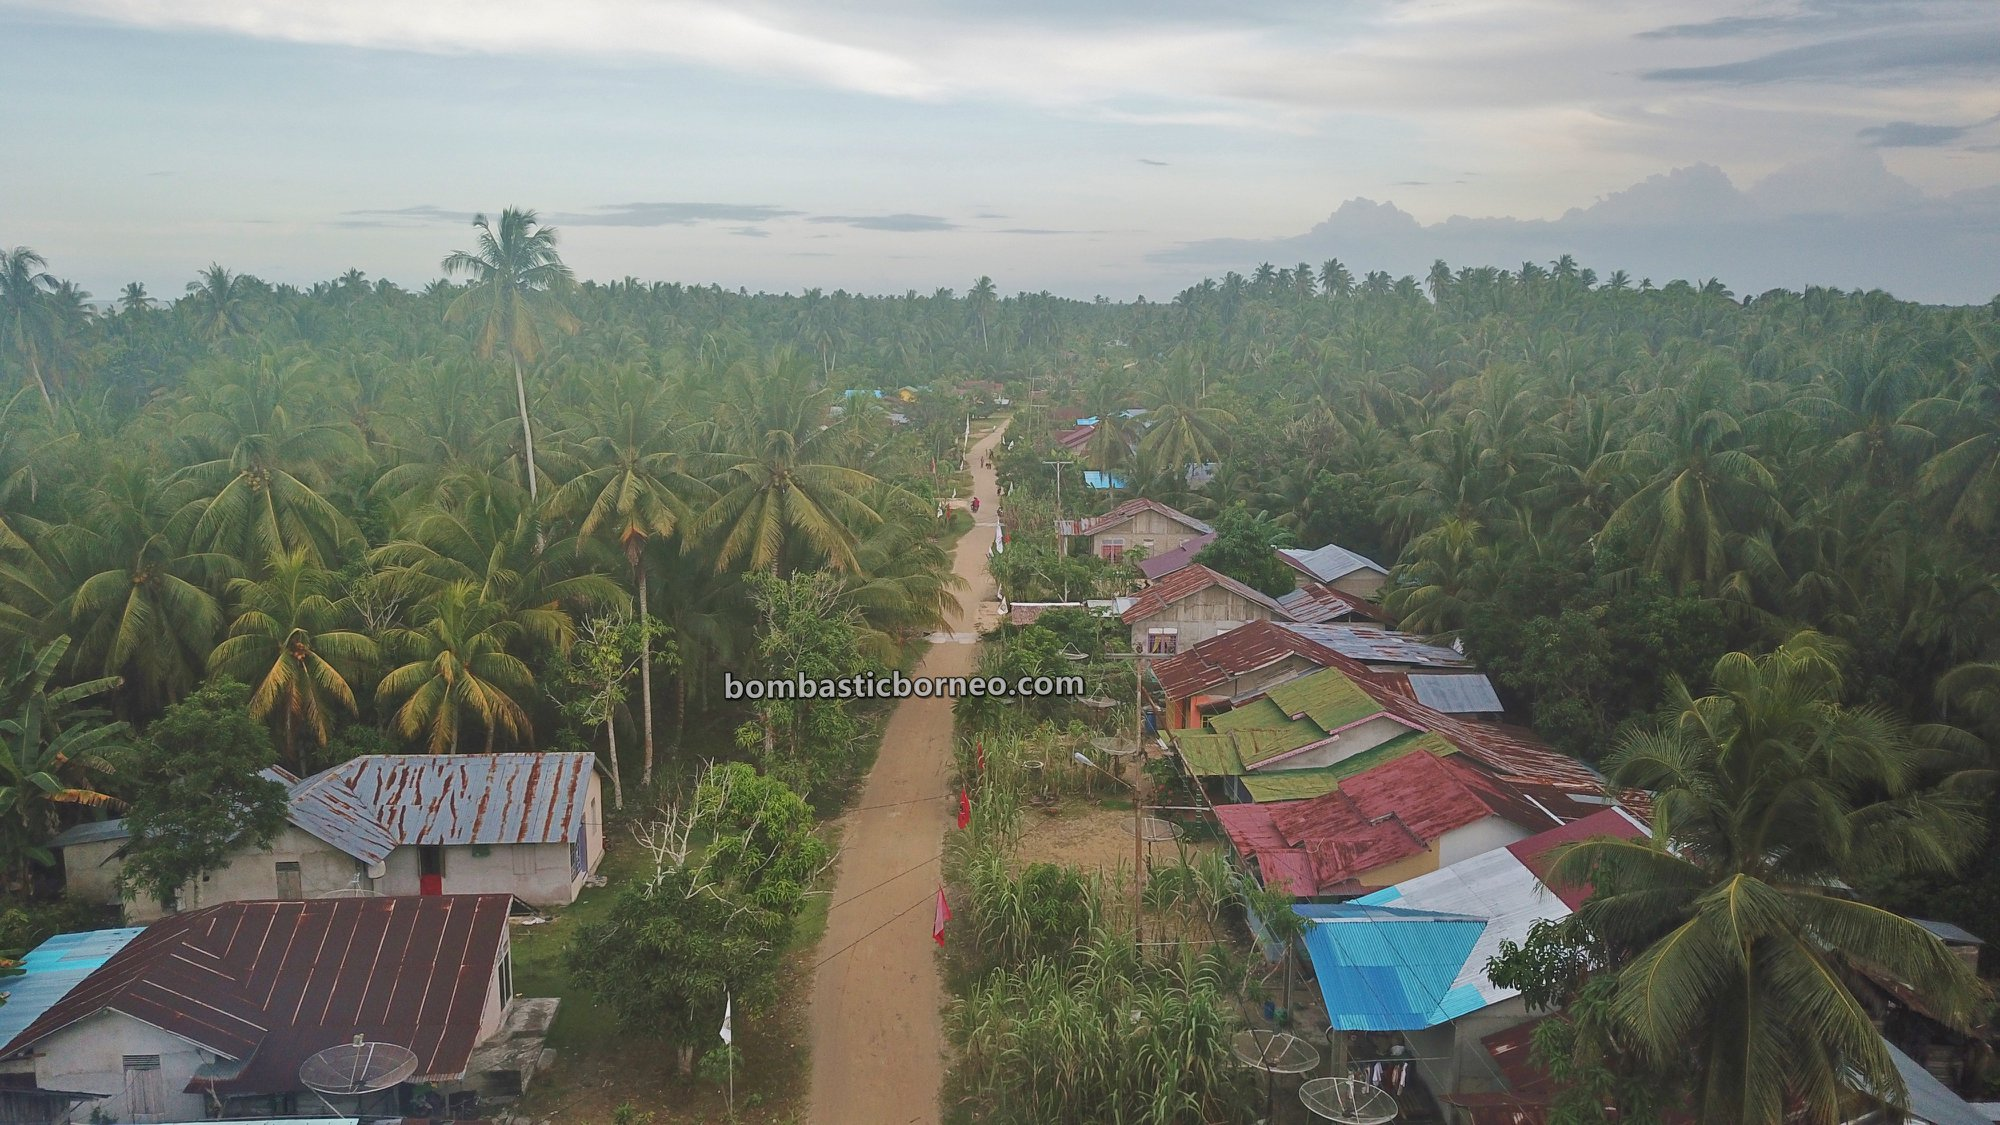 Pantai Putri Seraii, adventure, Malay fishing village, Kalimantan Barat, Bukit Raya, Obyek wisata, Tourism, travel guide, destination, Borneo, Cross Border, 跨境婆罗洲游踪, 印尼西加里曼丹, 三发马来渔村